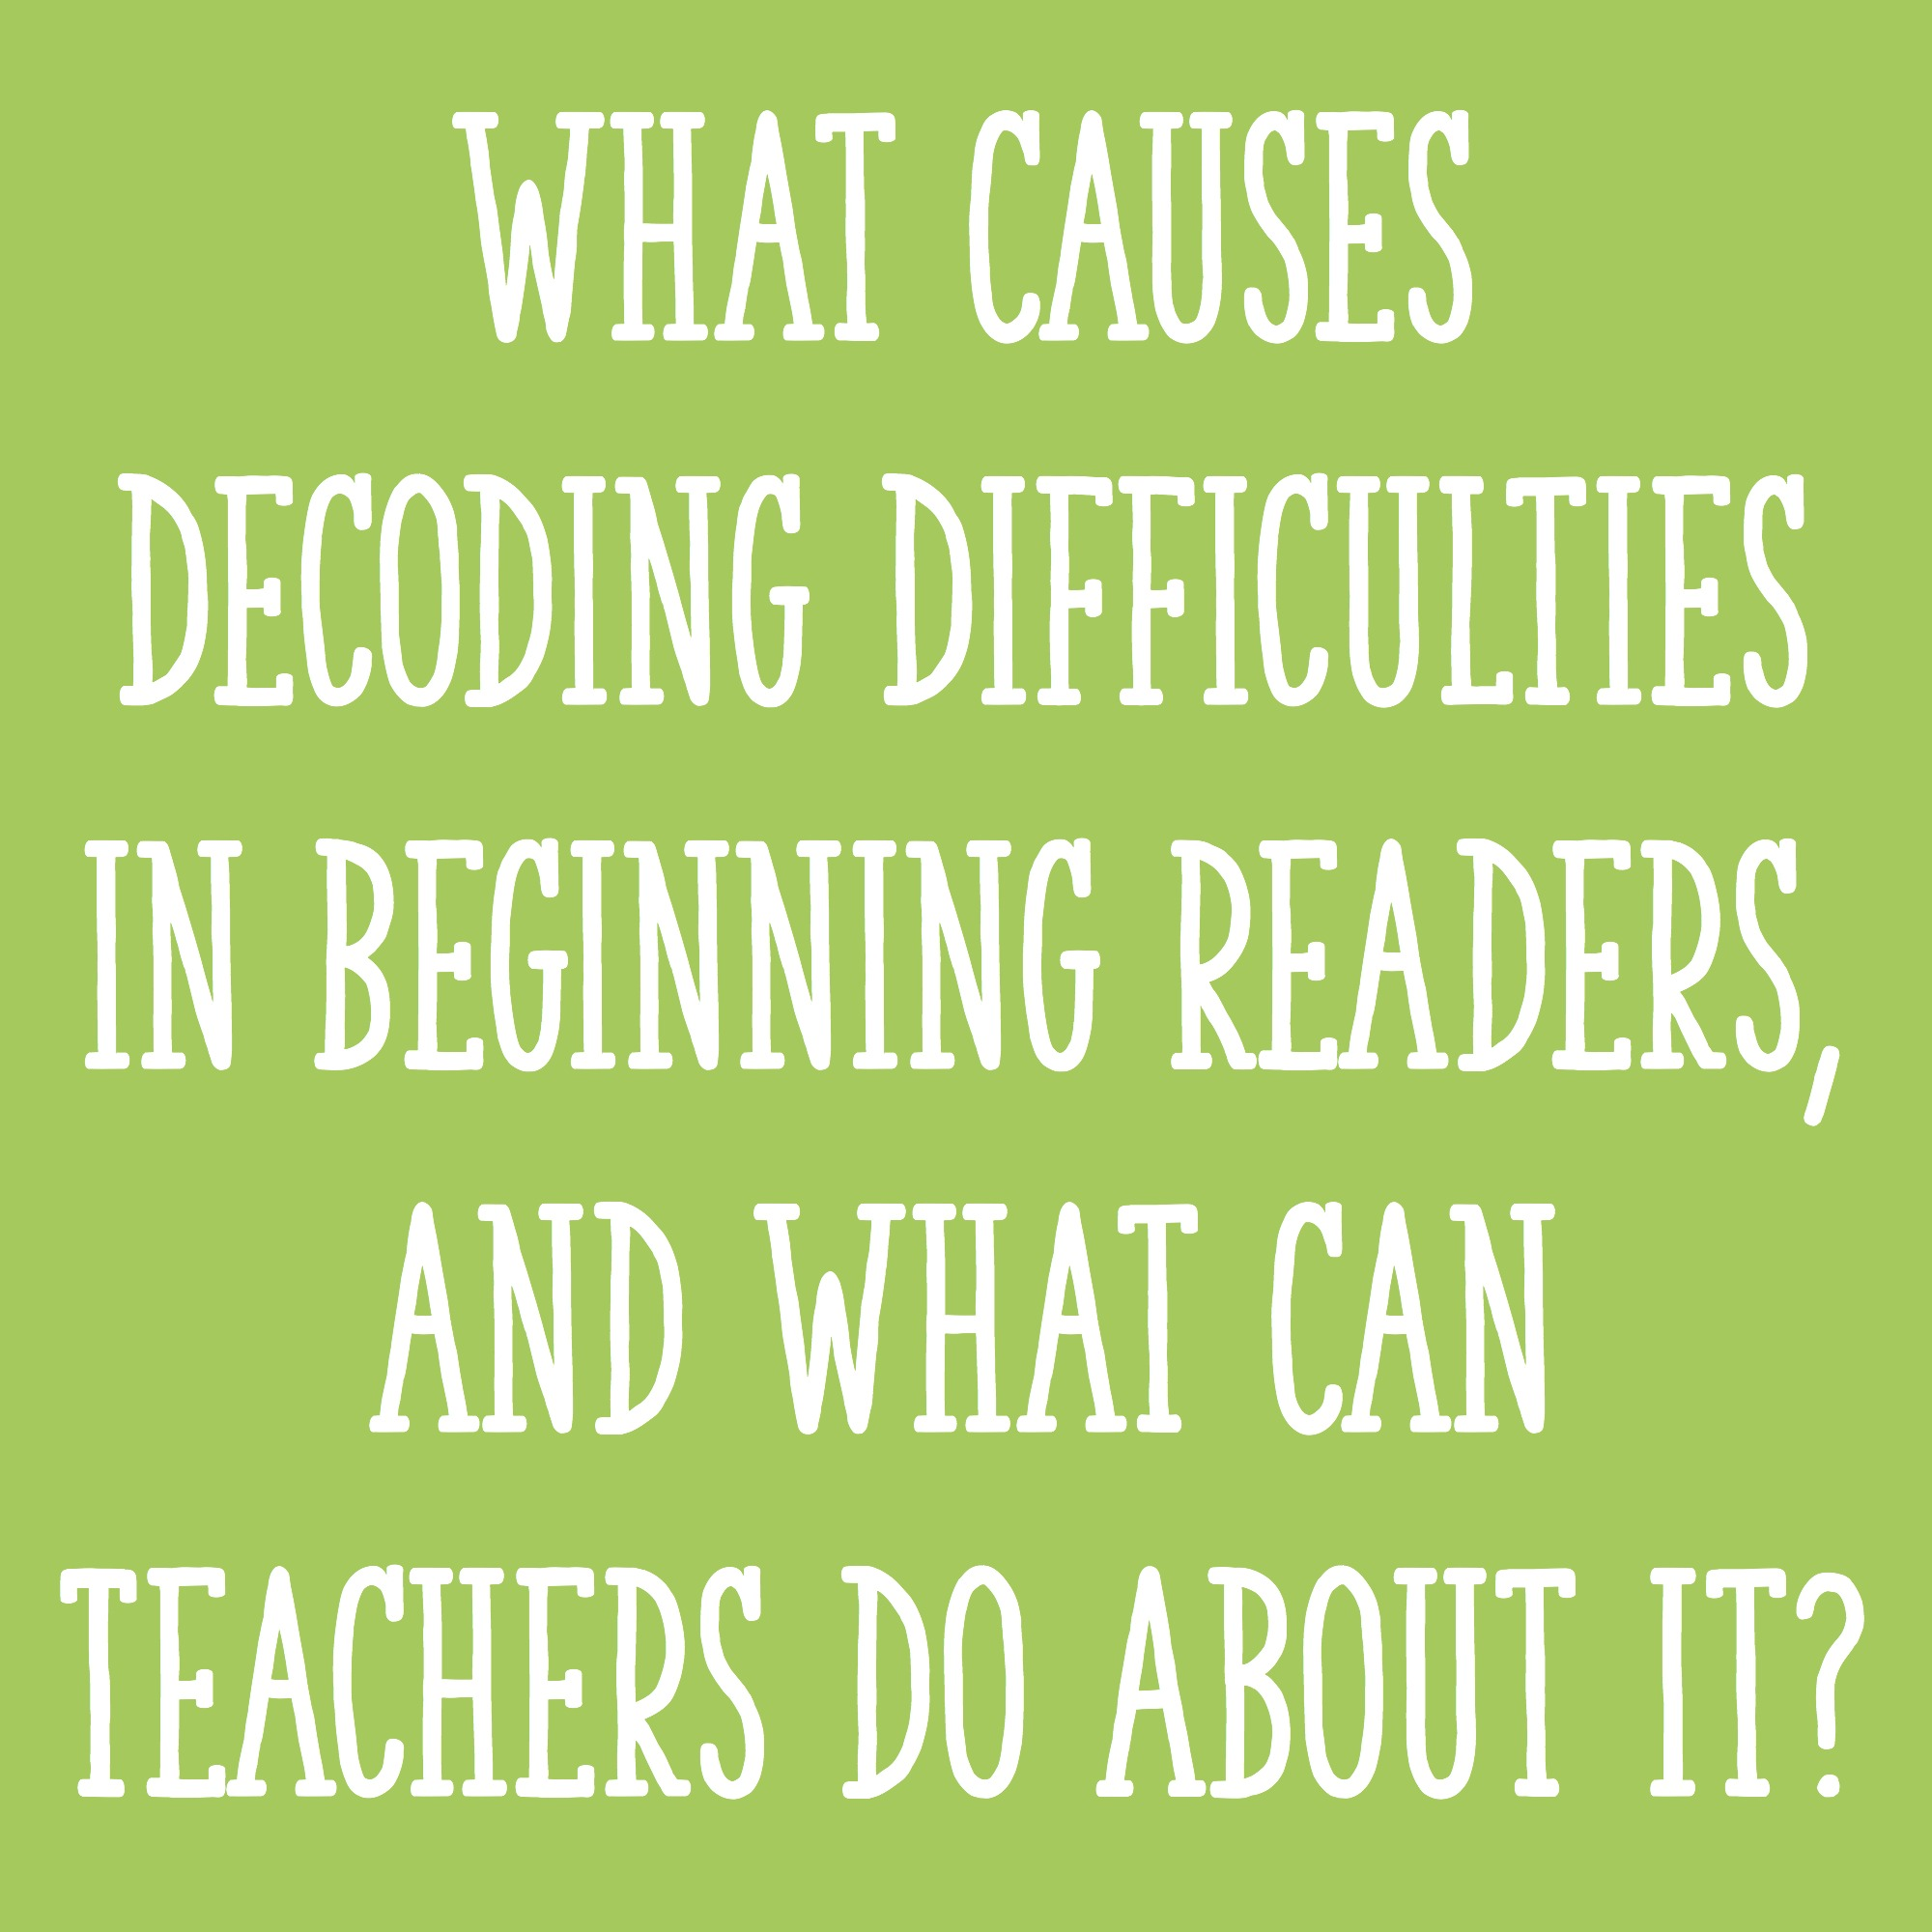 What Causes Decoding Difficulties in Beginning Readers, and What Can